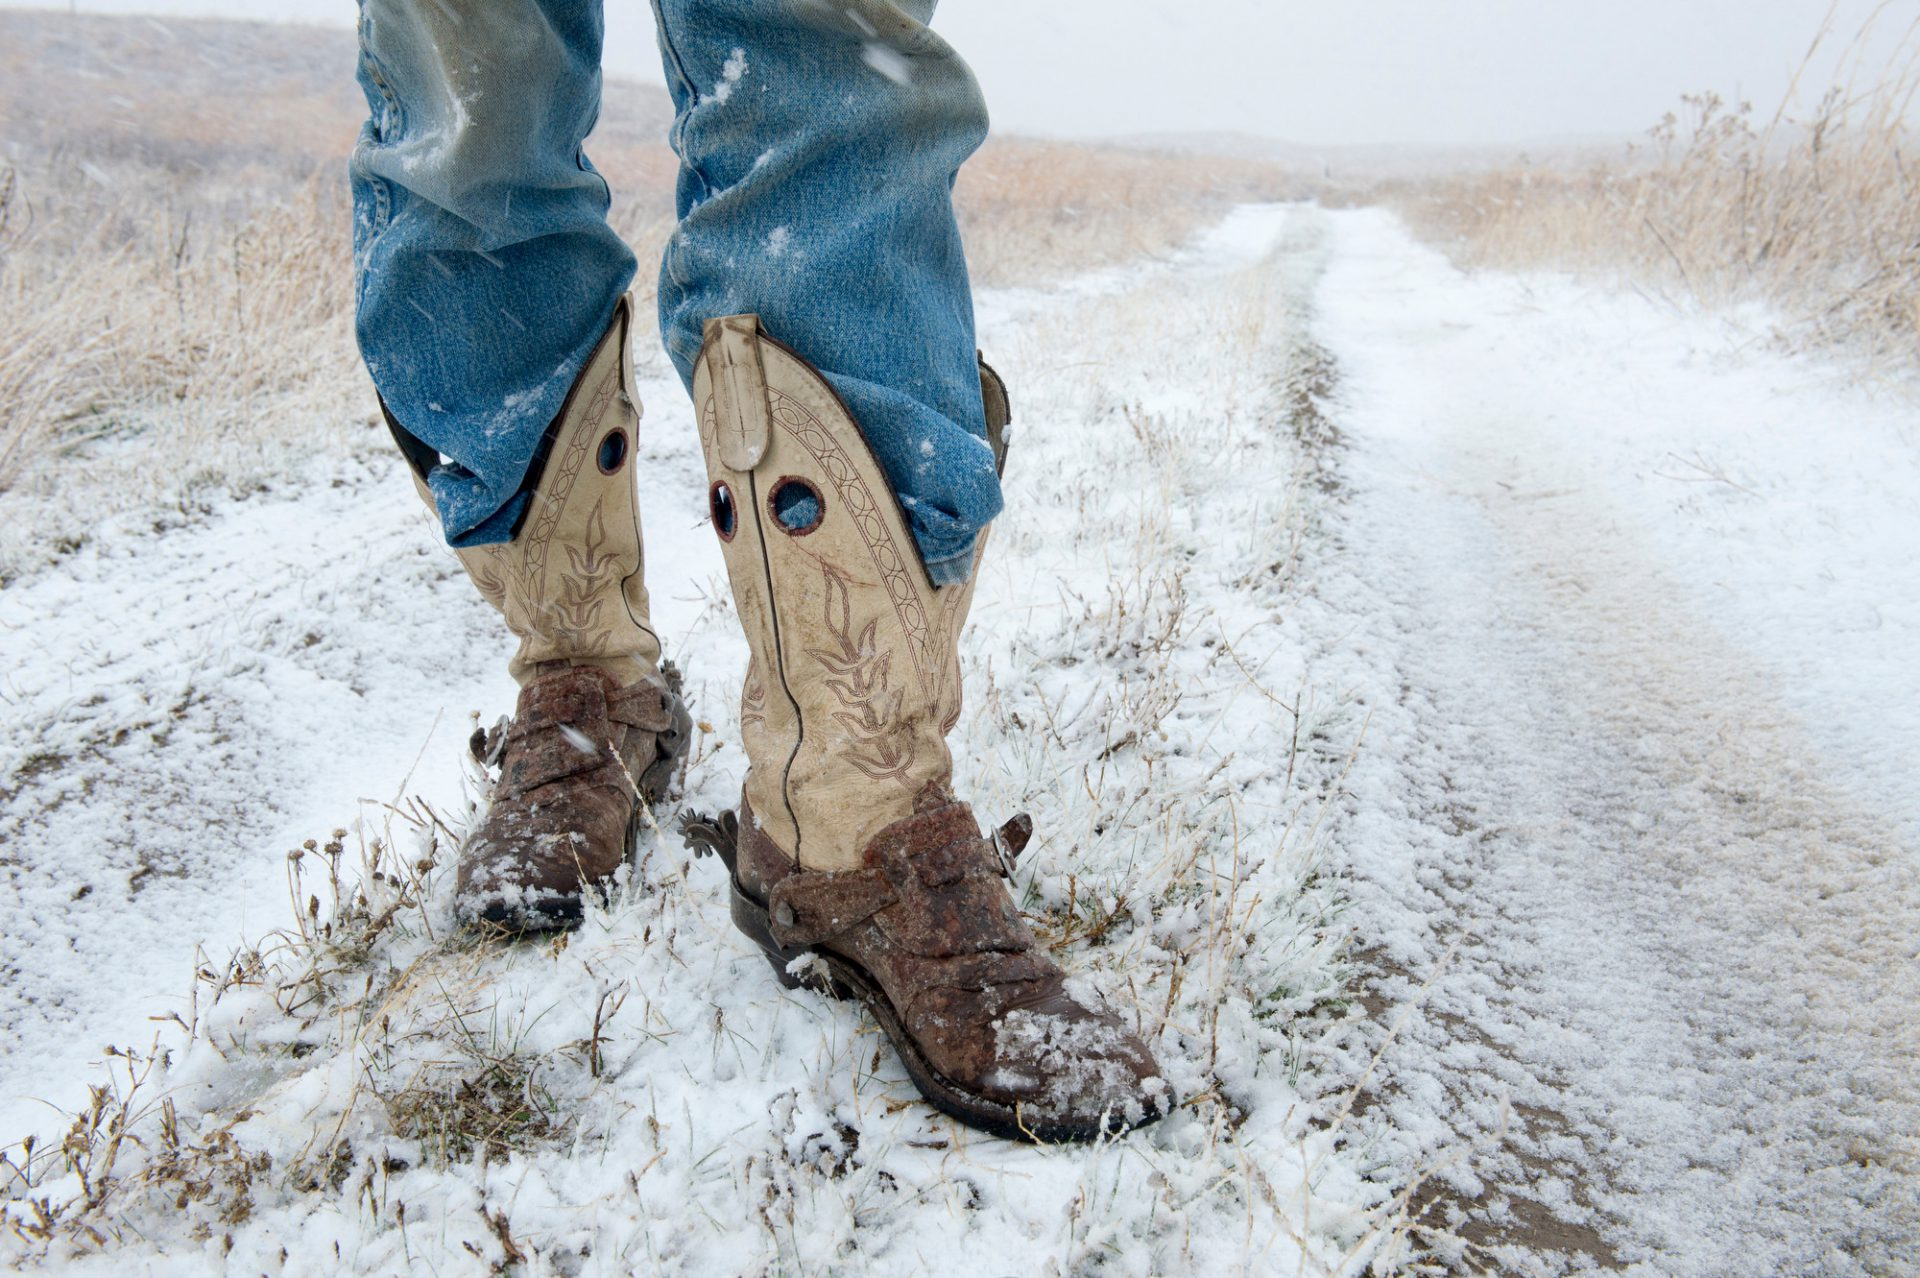 Photo: A man in cowboy boots stands on a dirt road during a snow storm.